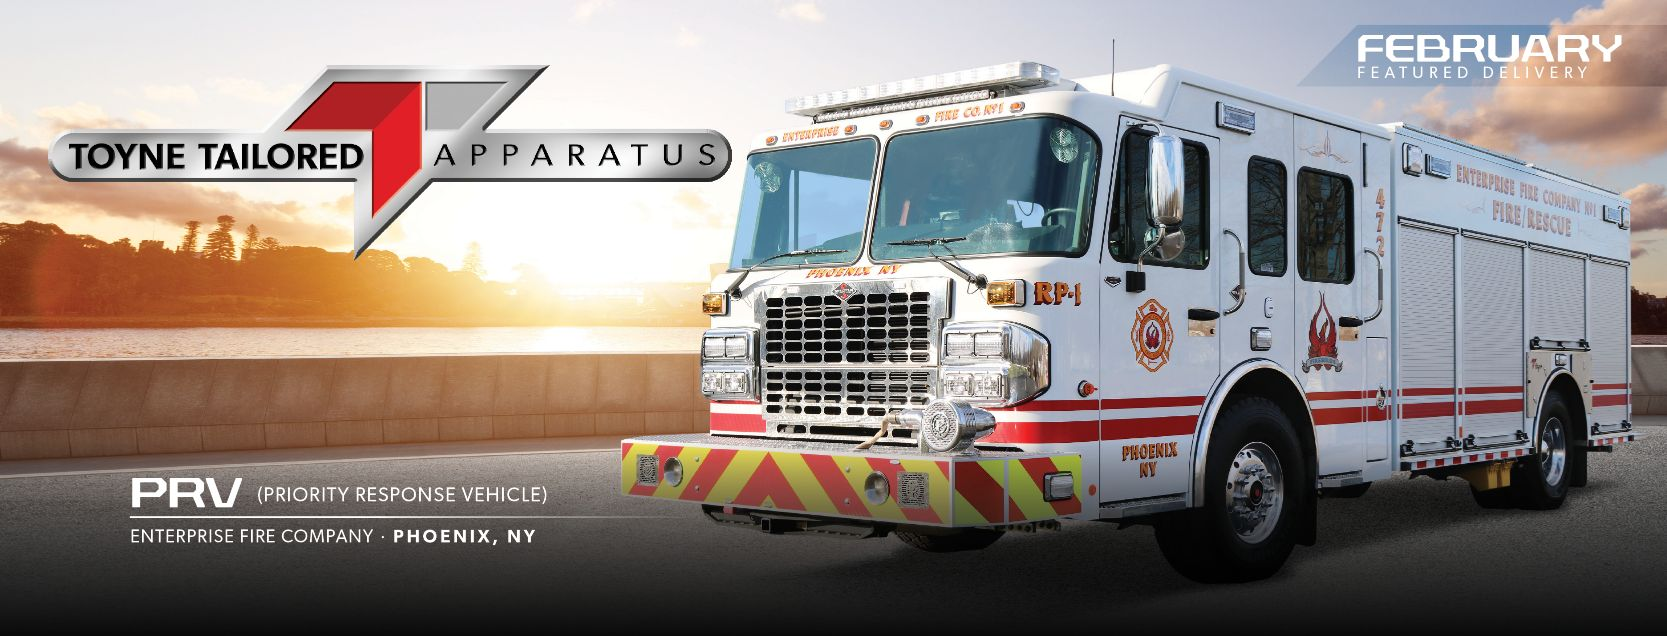 Featured Delivery Enterprise Fire Company